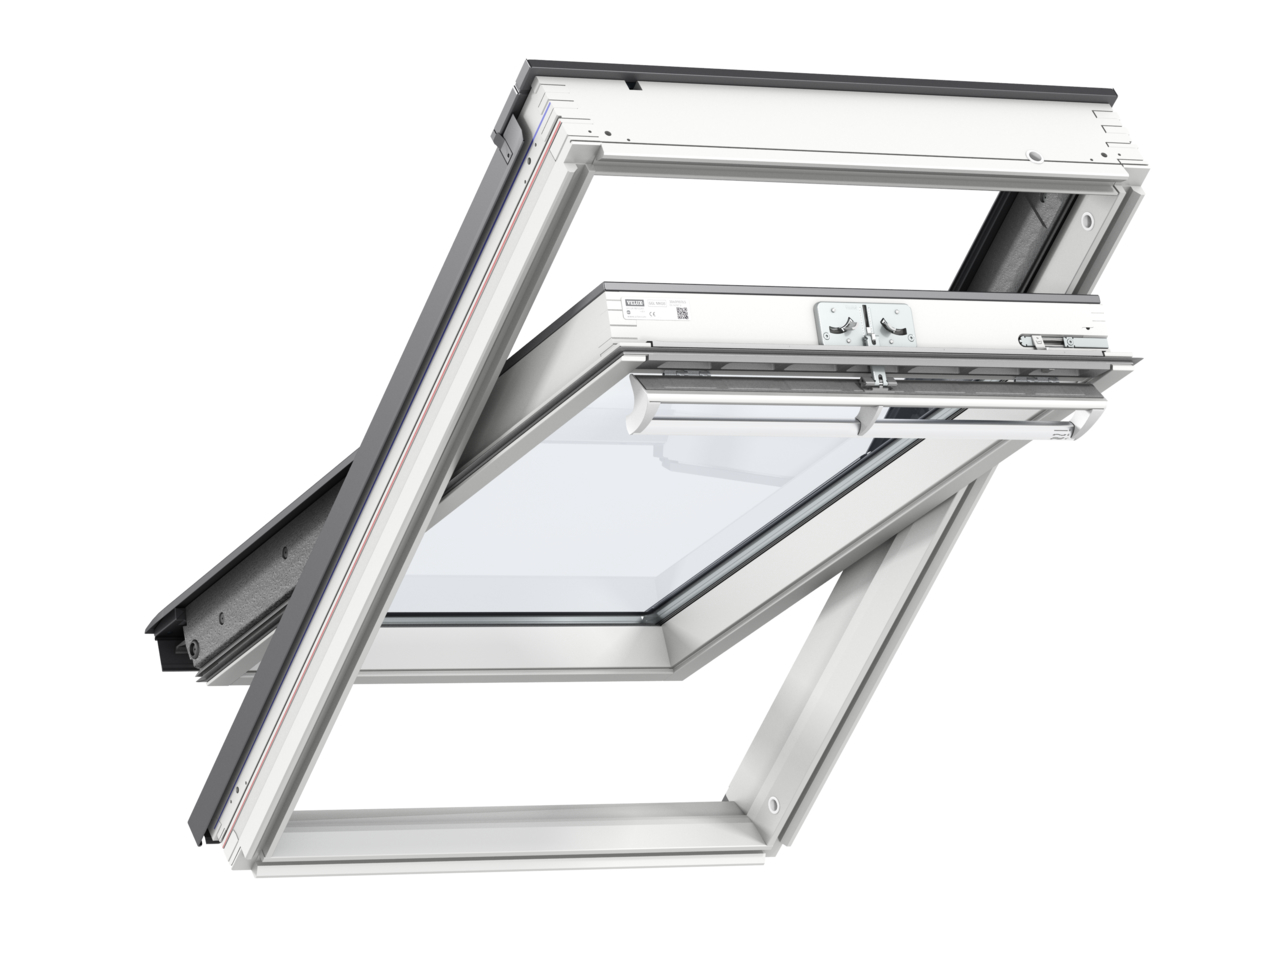 Velux GGL MK06 780 x 1180mm Centre Pivot 60Pane Roof Window - White Painted